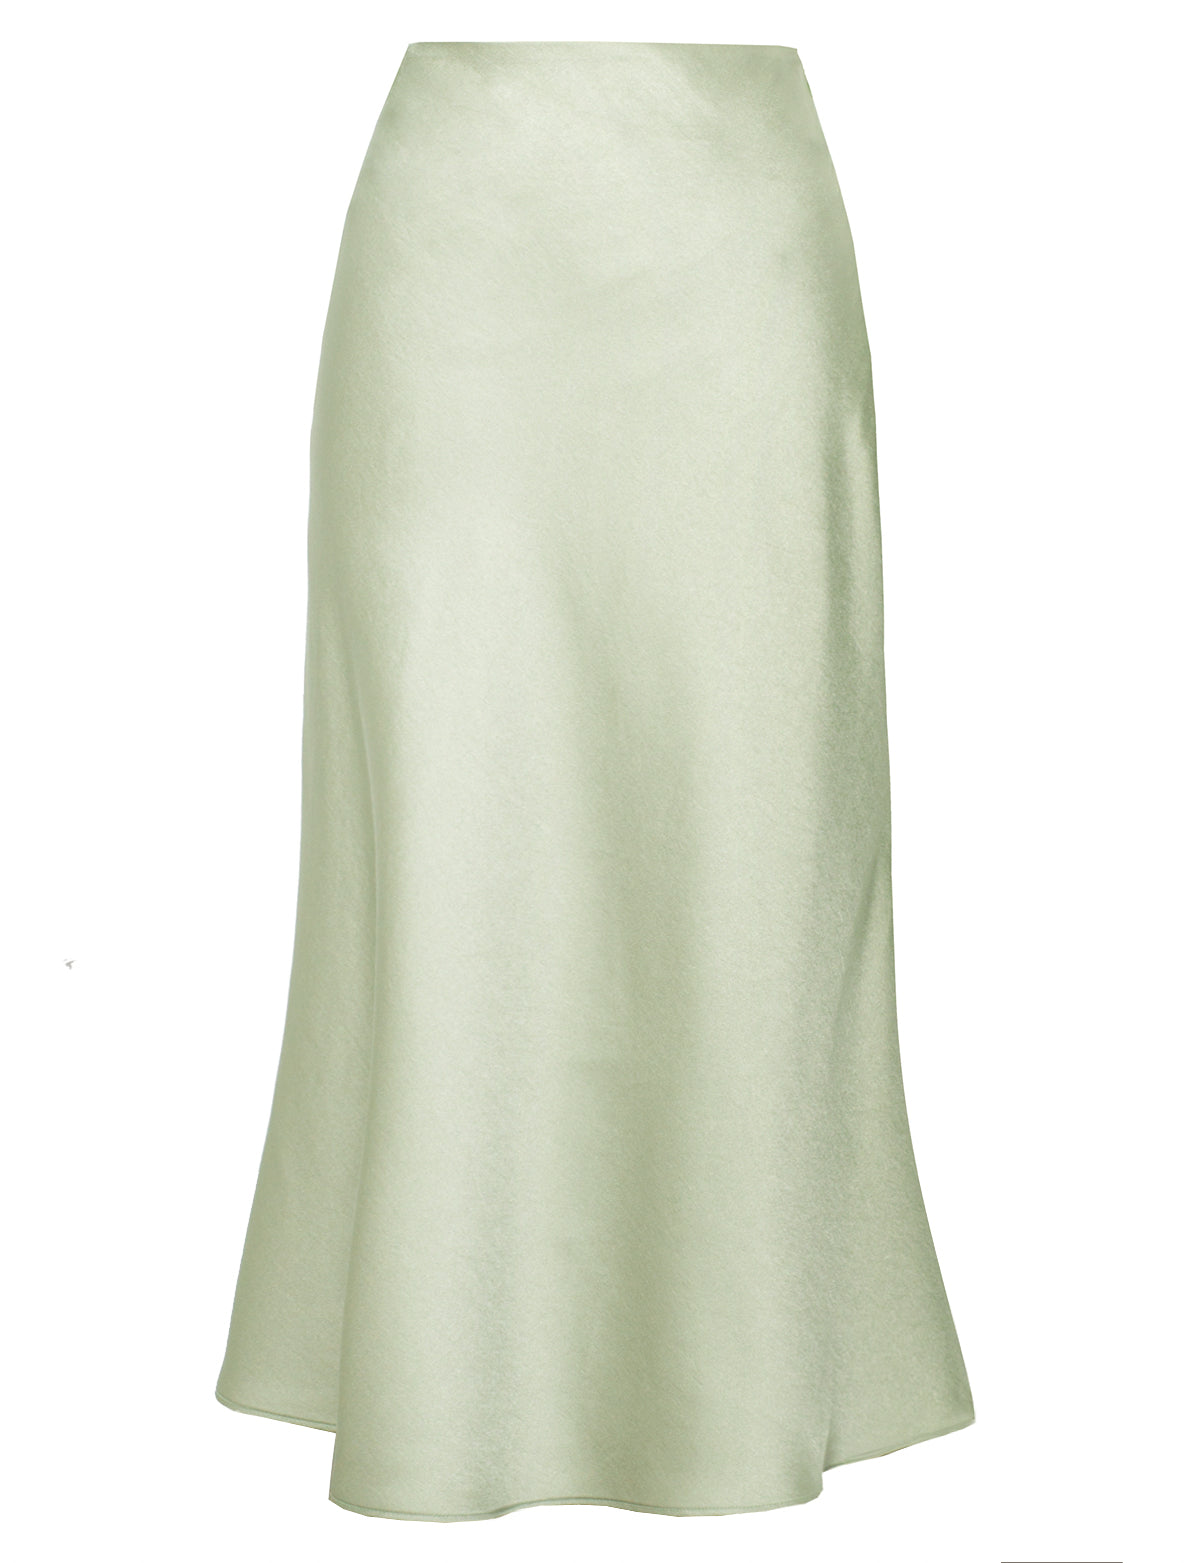 Pistachio Green Satin Skirt